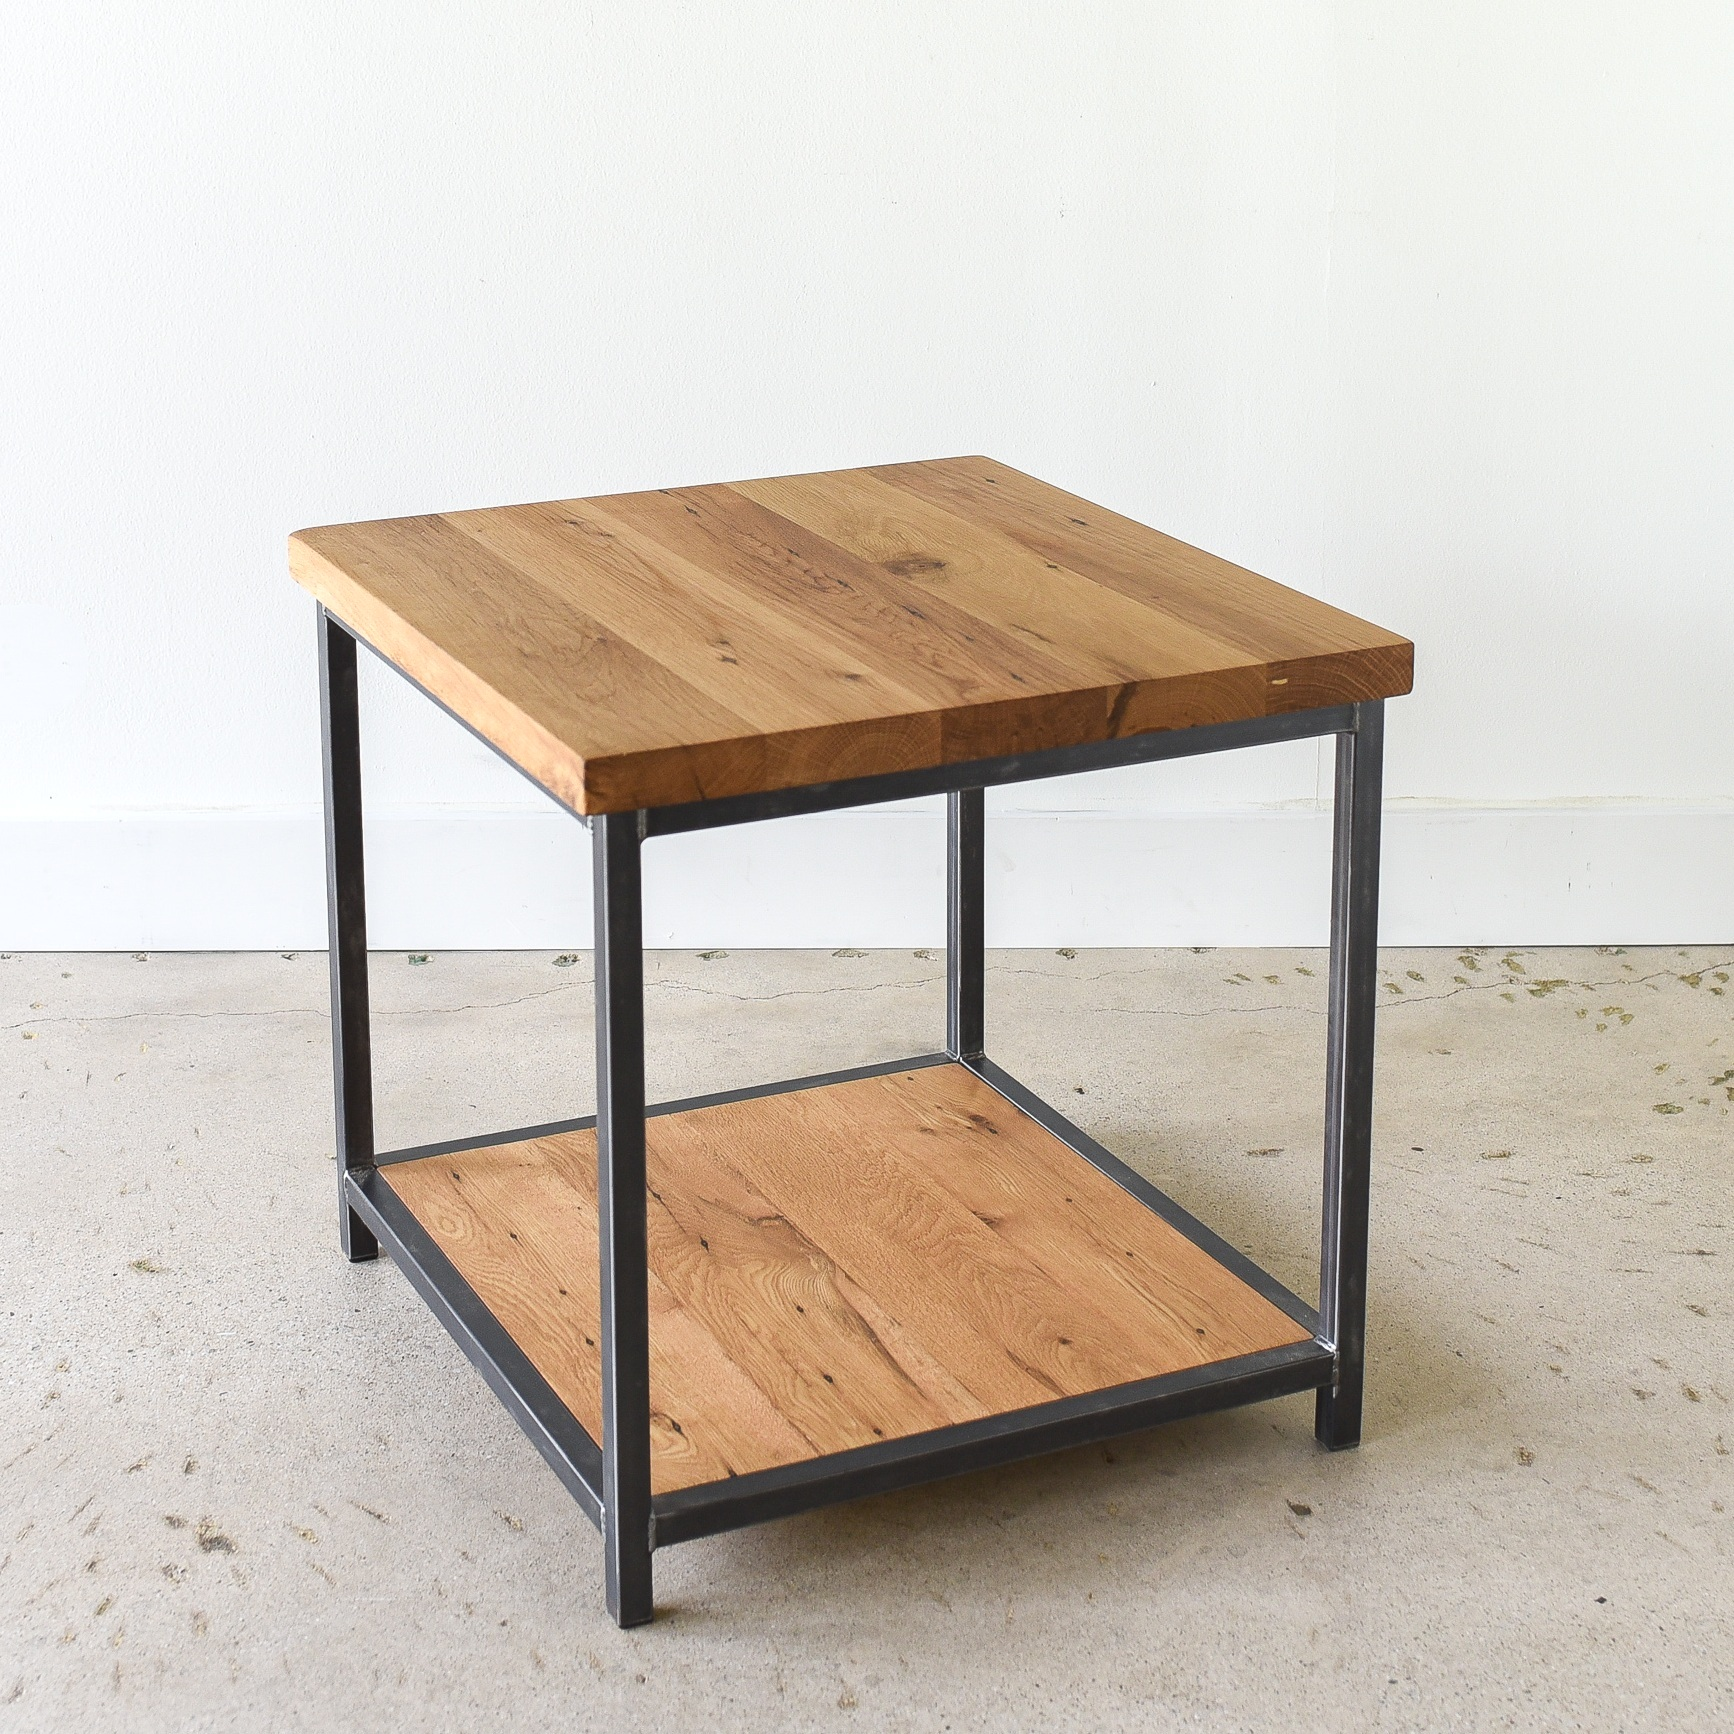 - Modern Industrial Accent Table - WHAT WE MAKE